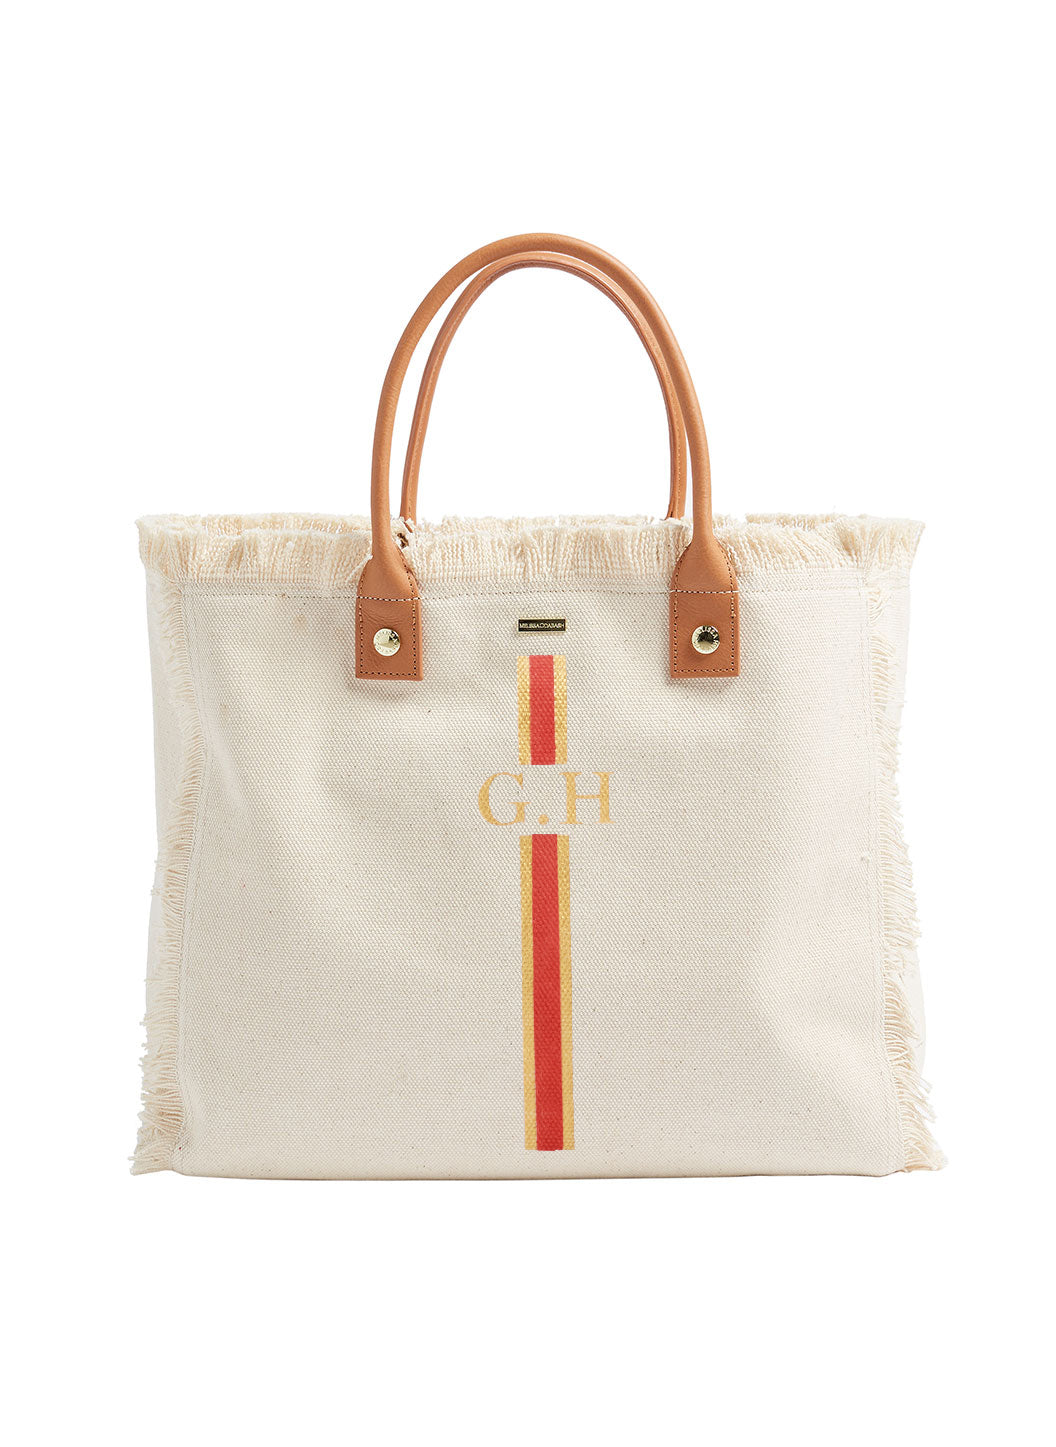 Melissa Odabash Capferrat Coral Stripe Large Beach Tote Beige - Melissa Odabash Personalised Bags